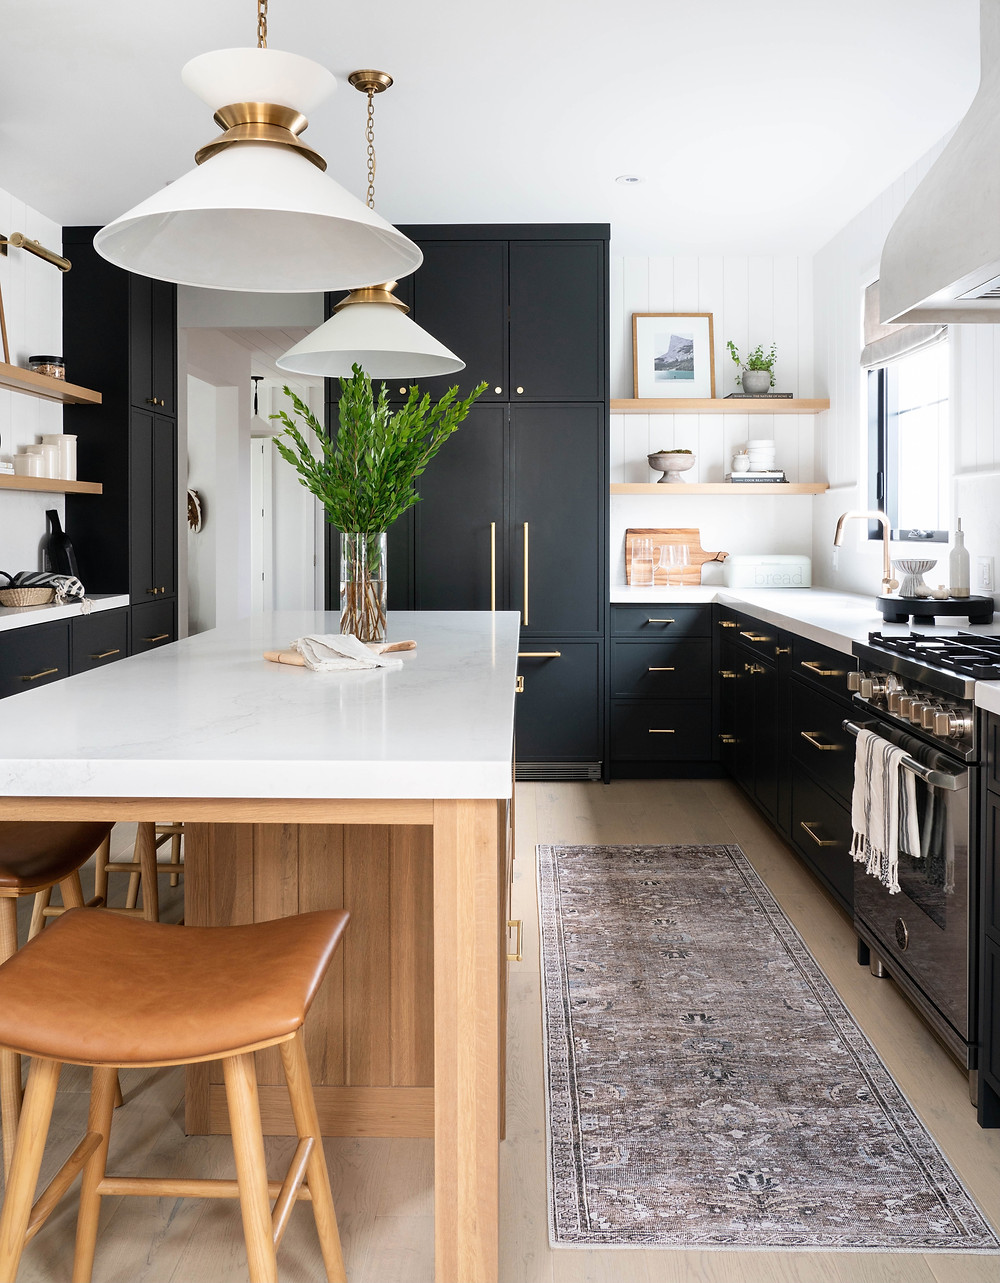 High-contrast kitchen with black thin shaker style cabinets and white oak island design.